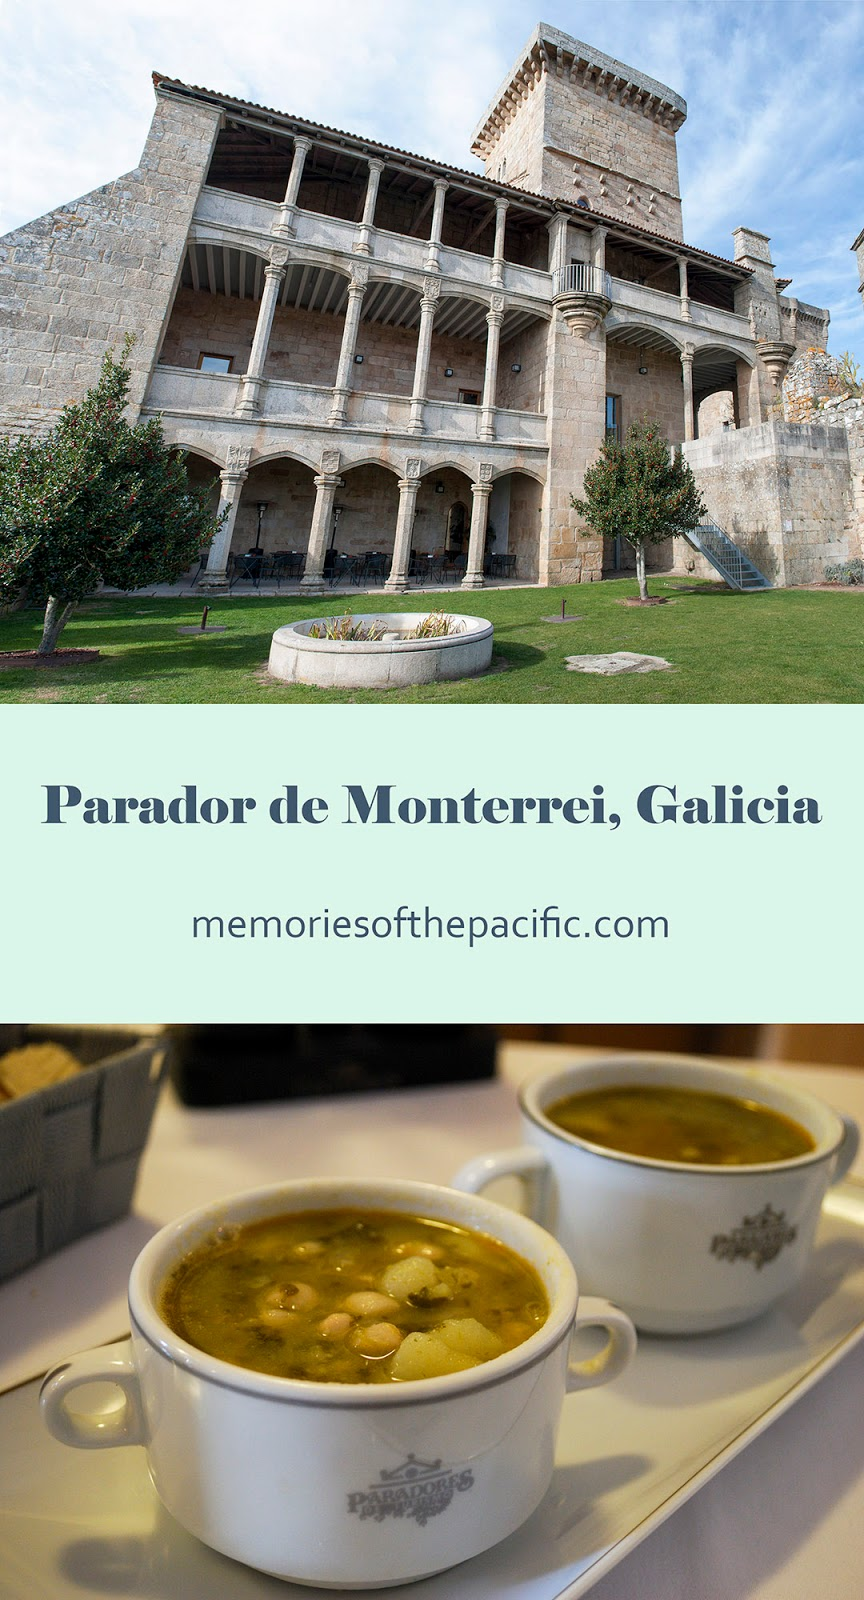 parador luxury hotel castle heritage spain galicia accommodation patrimonio castillo